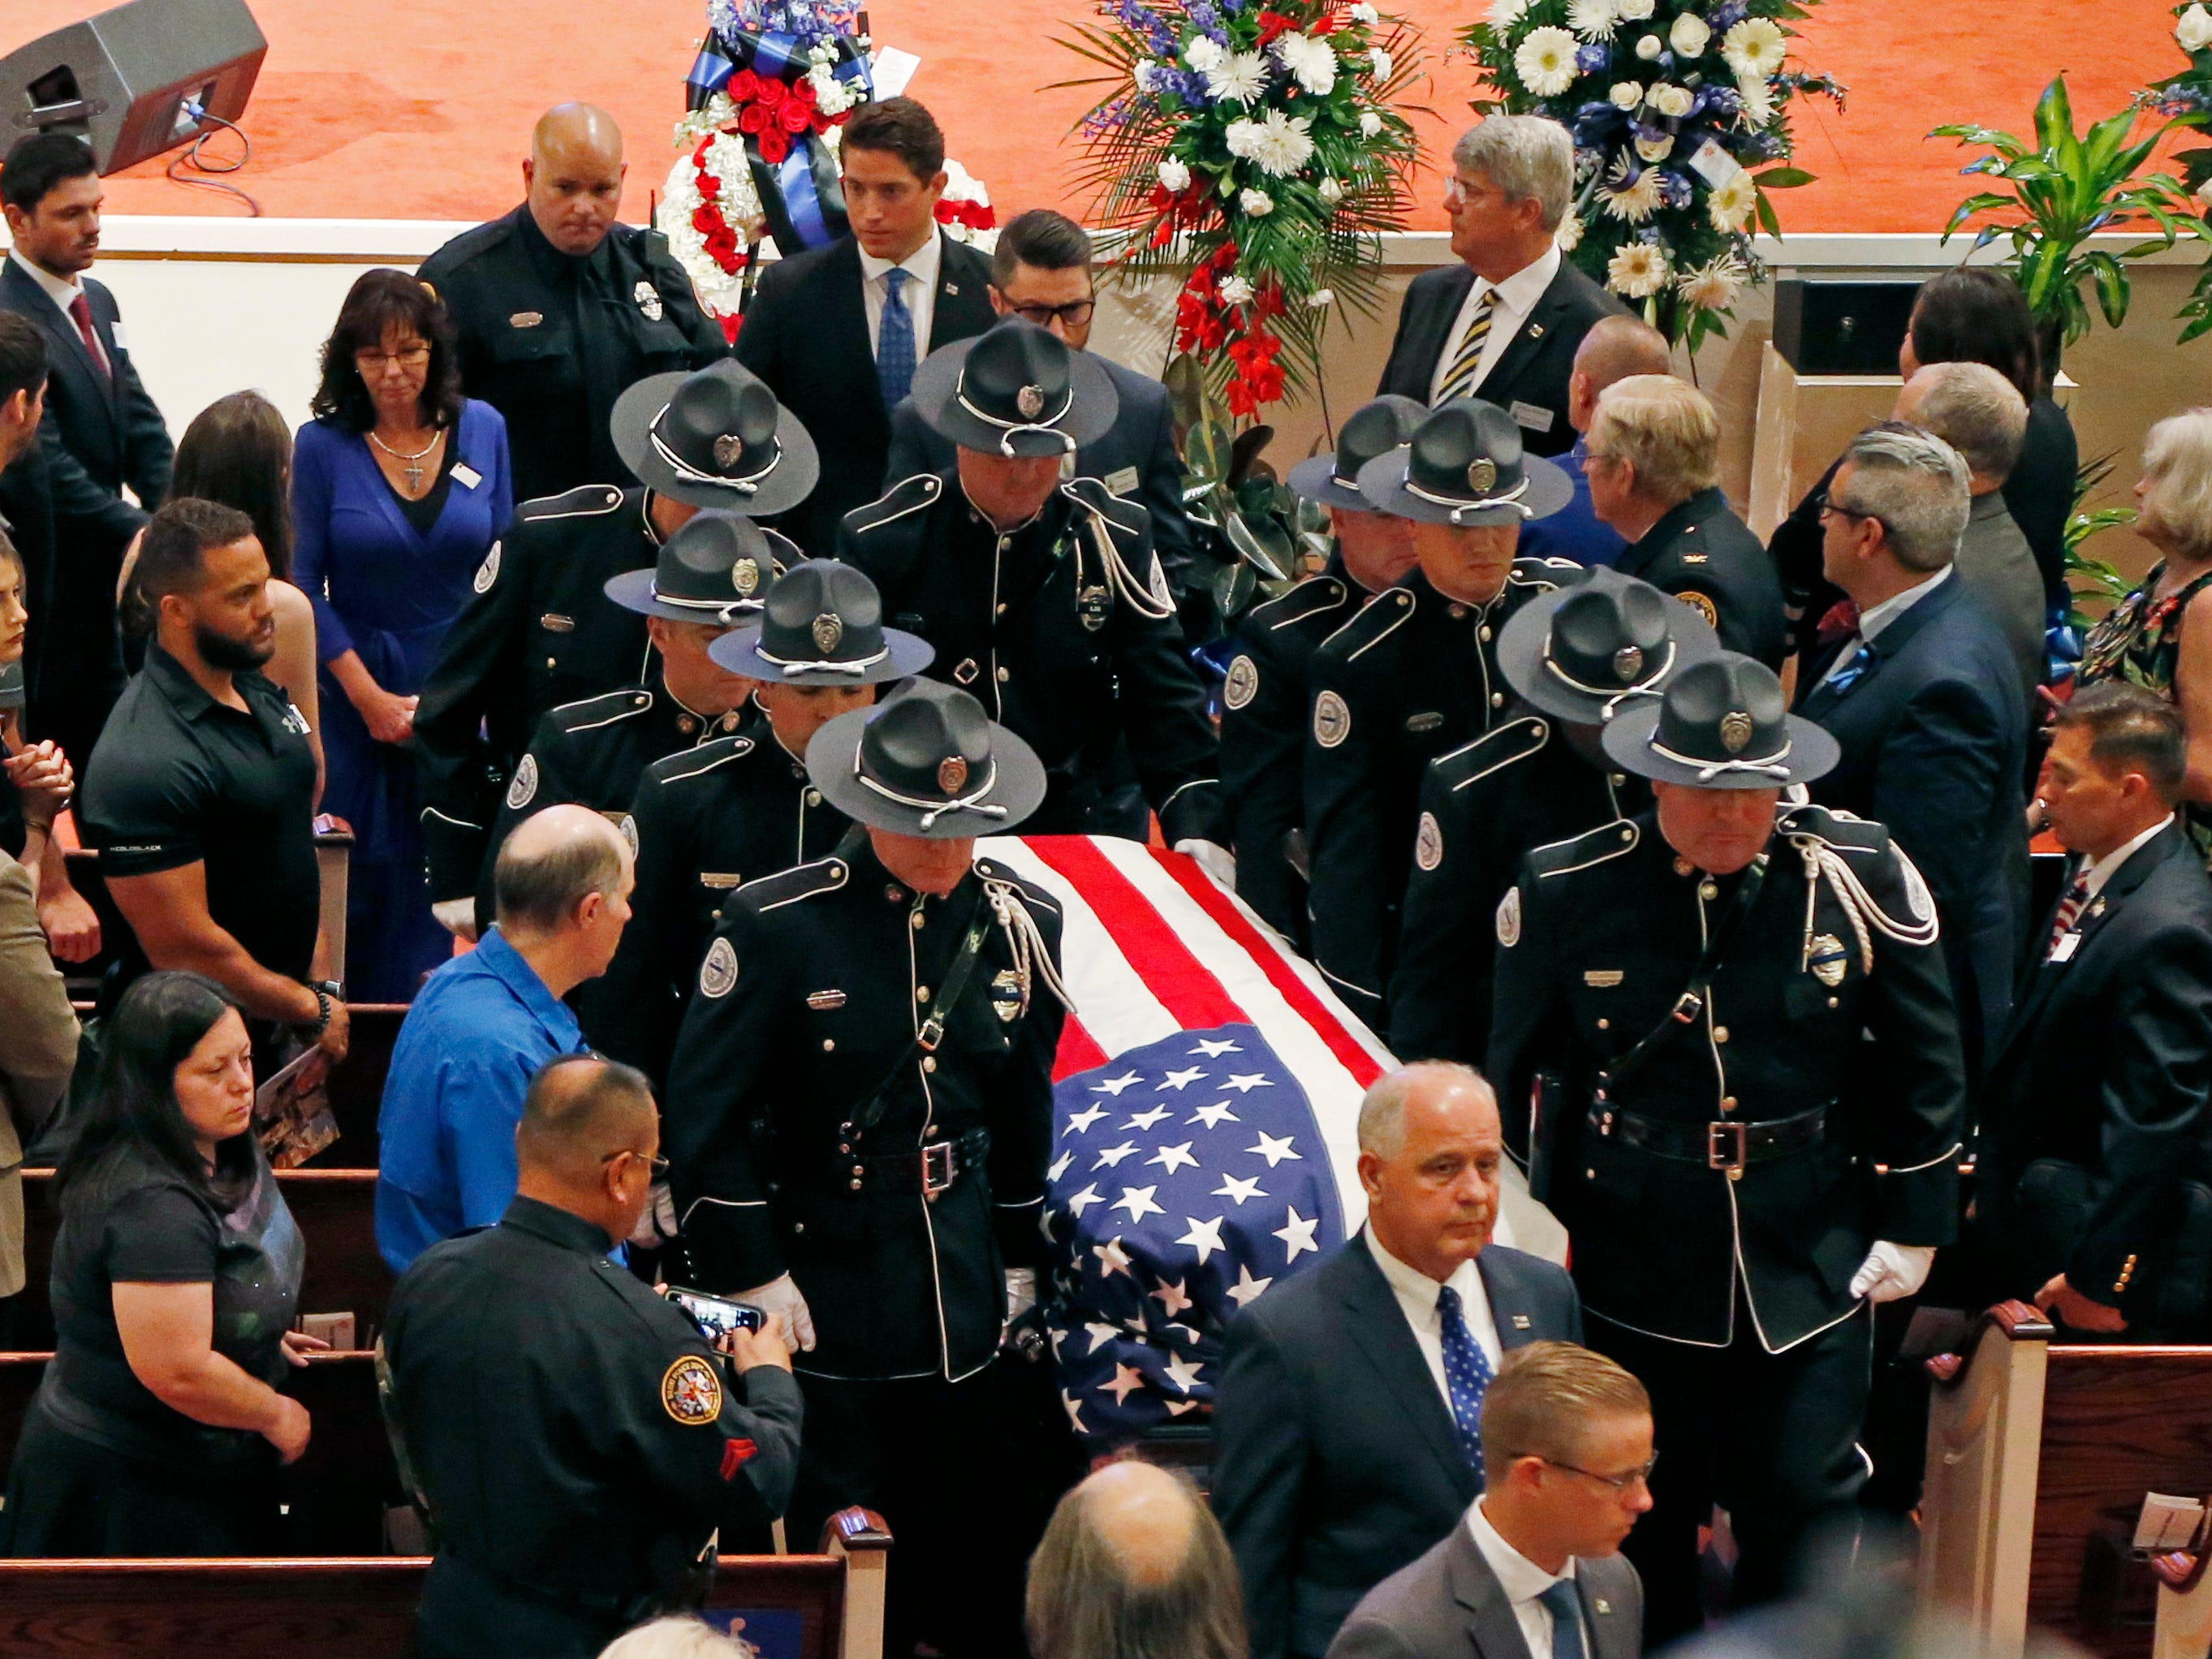 The City of Biloxi, Miss., Police Department Honor Guard, escort the casket of officer Robert S. McKeithen, out of First Baptist Church of Biloxi, Monday, May 13, 2019. Several hundred lawmen from around the country attended the service. McKeithen was killed outside headquarters May 5.